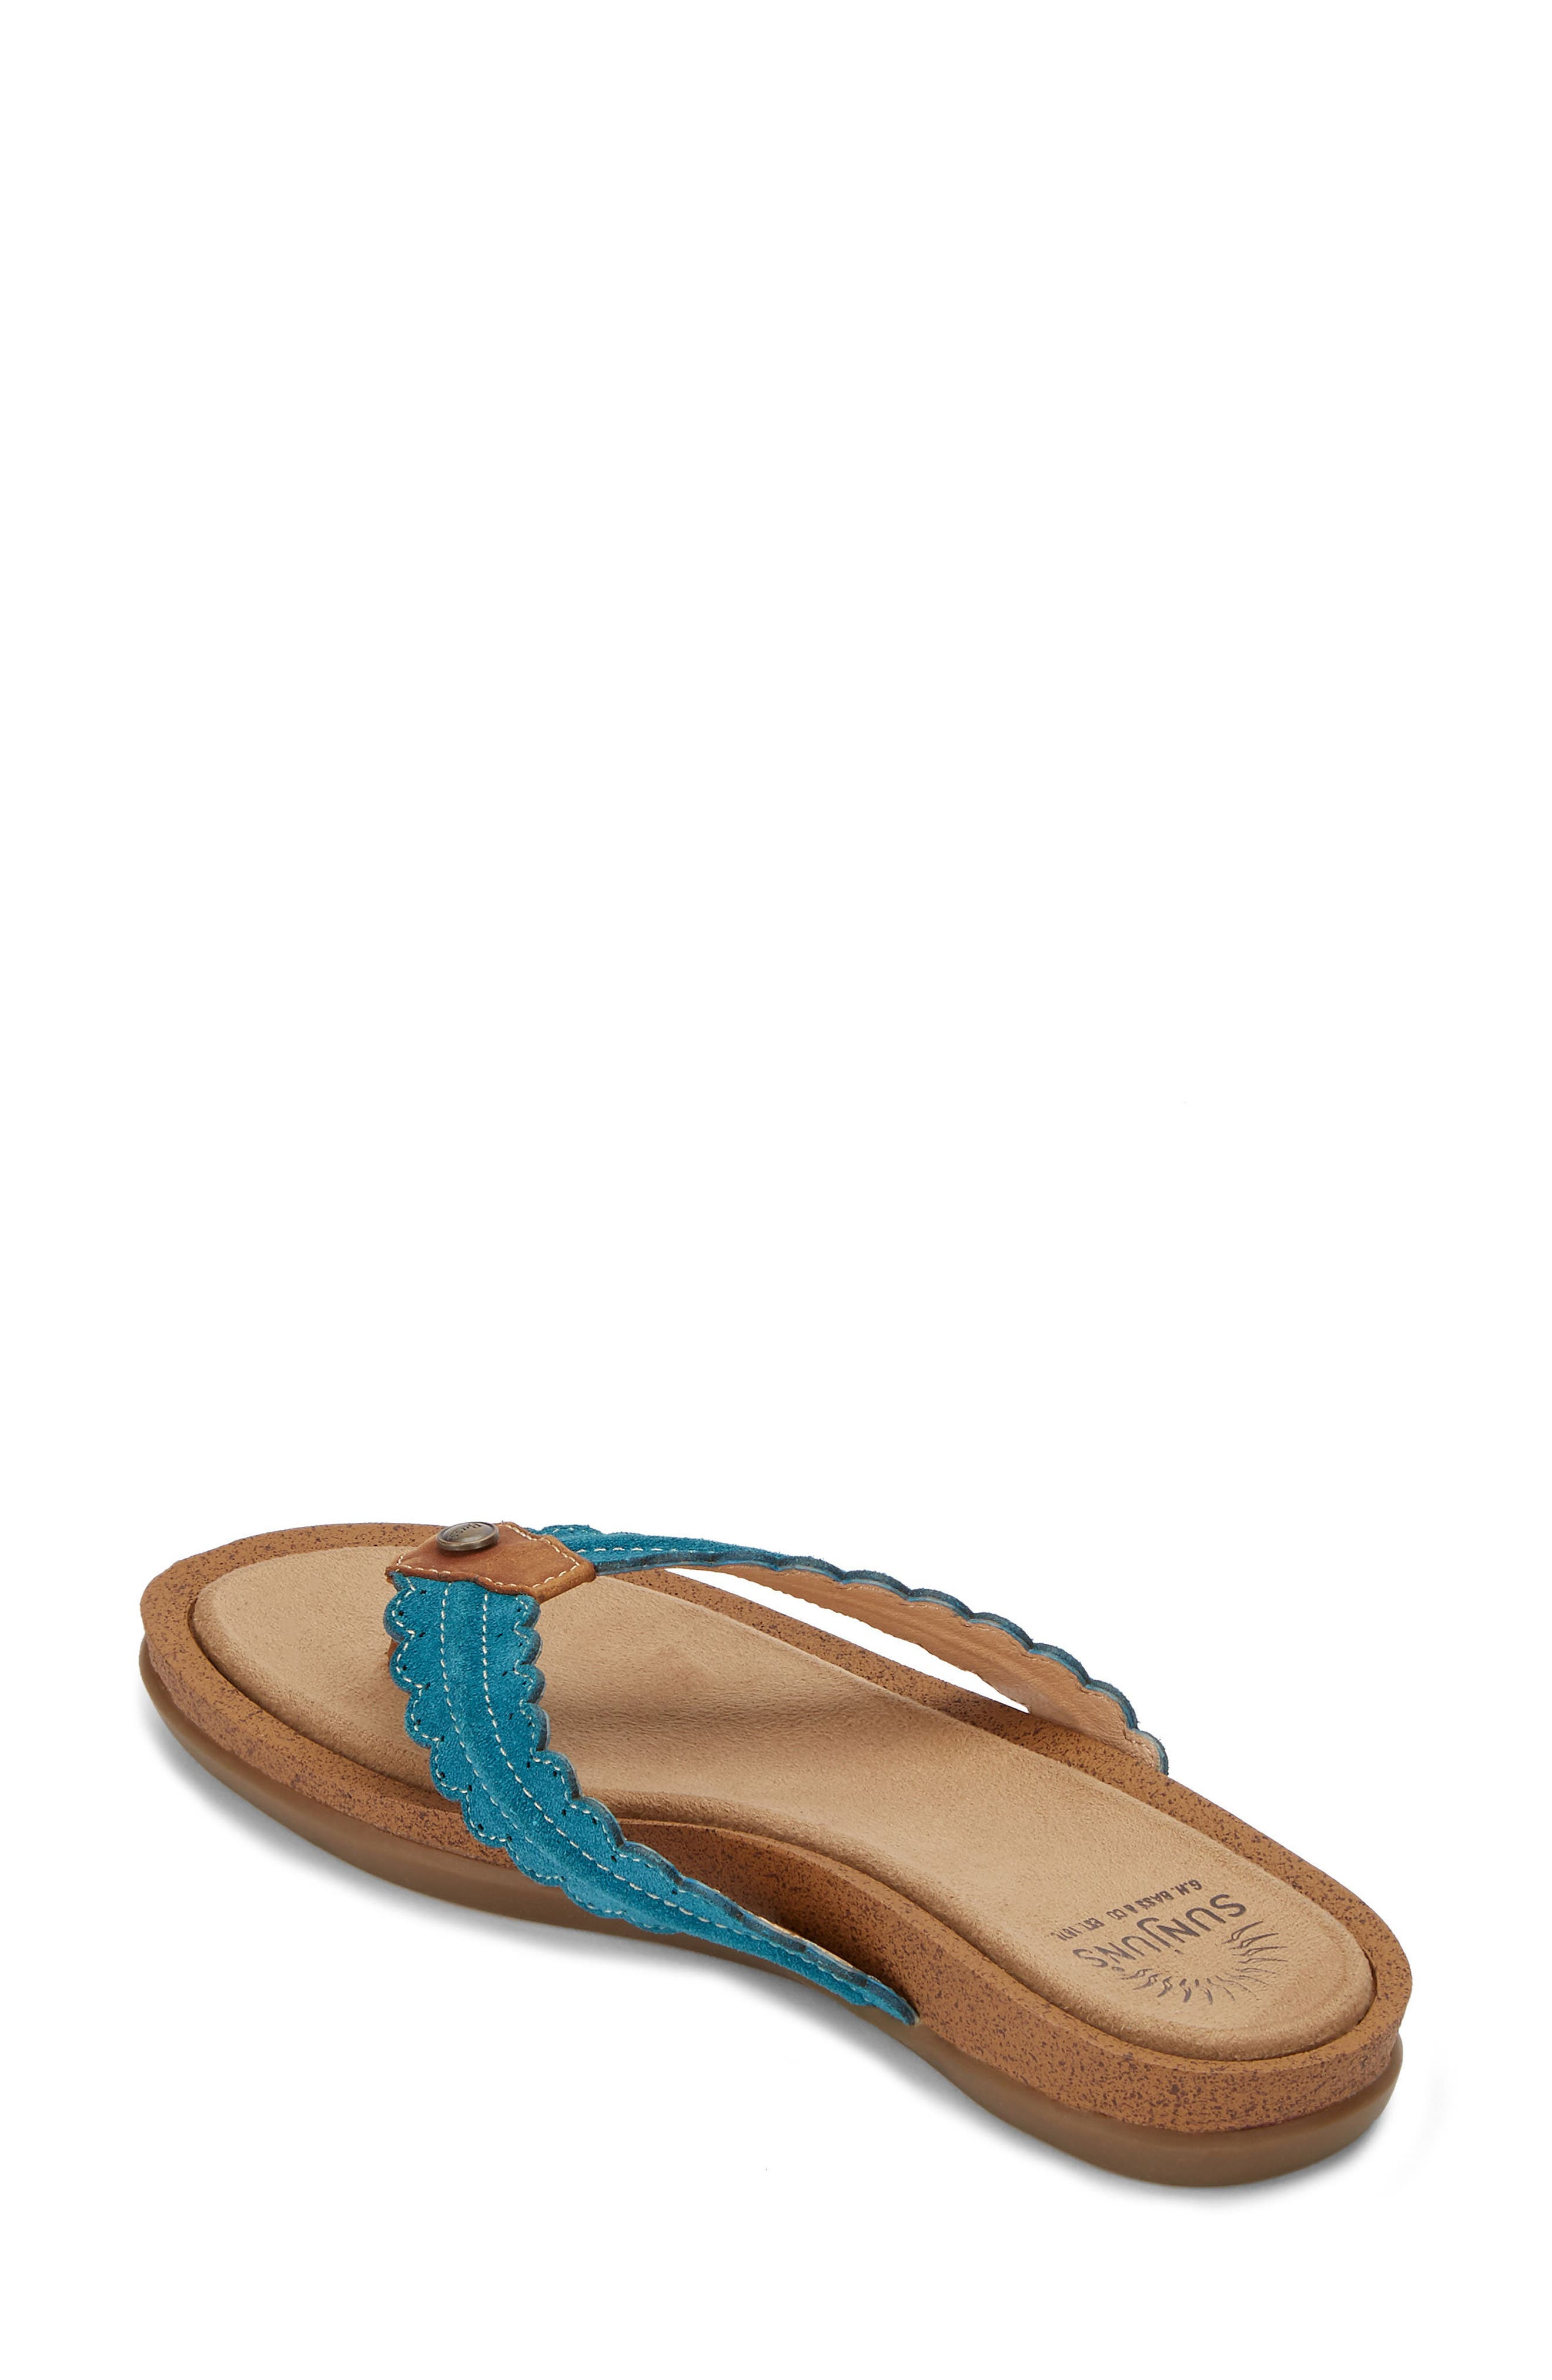 G.H. Bass and Co. Samantha Thong Sandal,                             Alternate thumbnail 9, color,